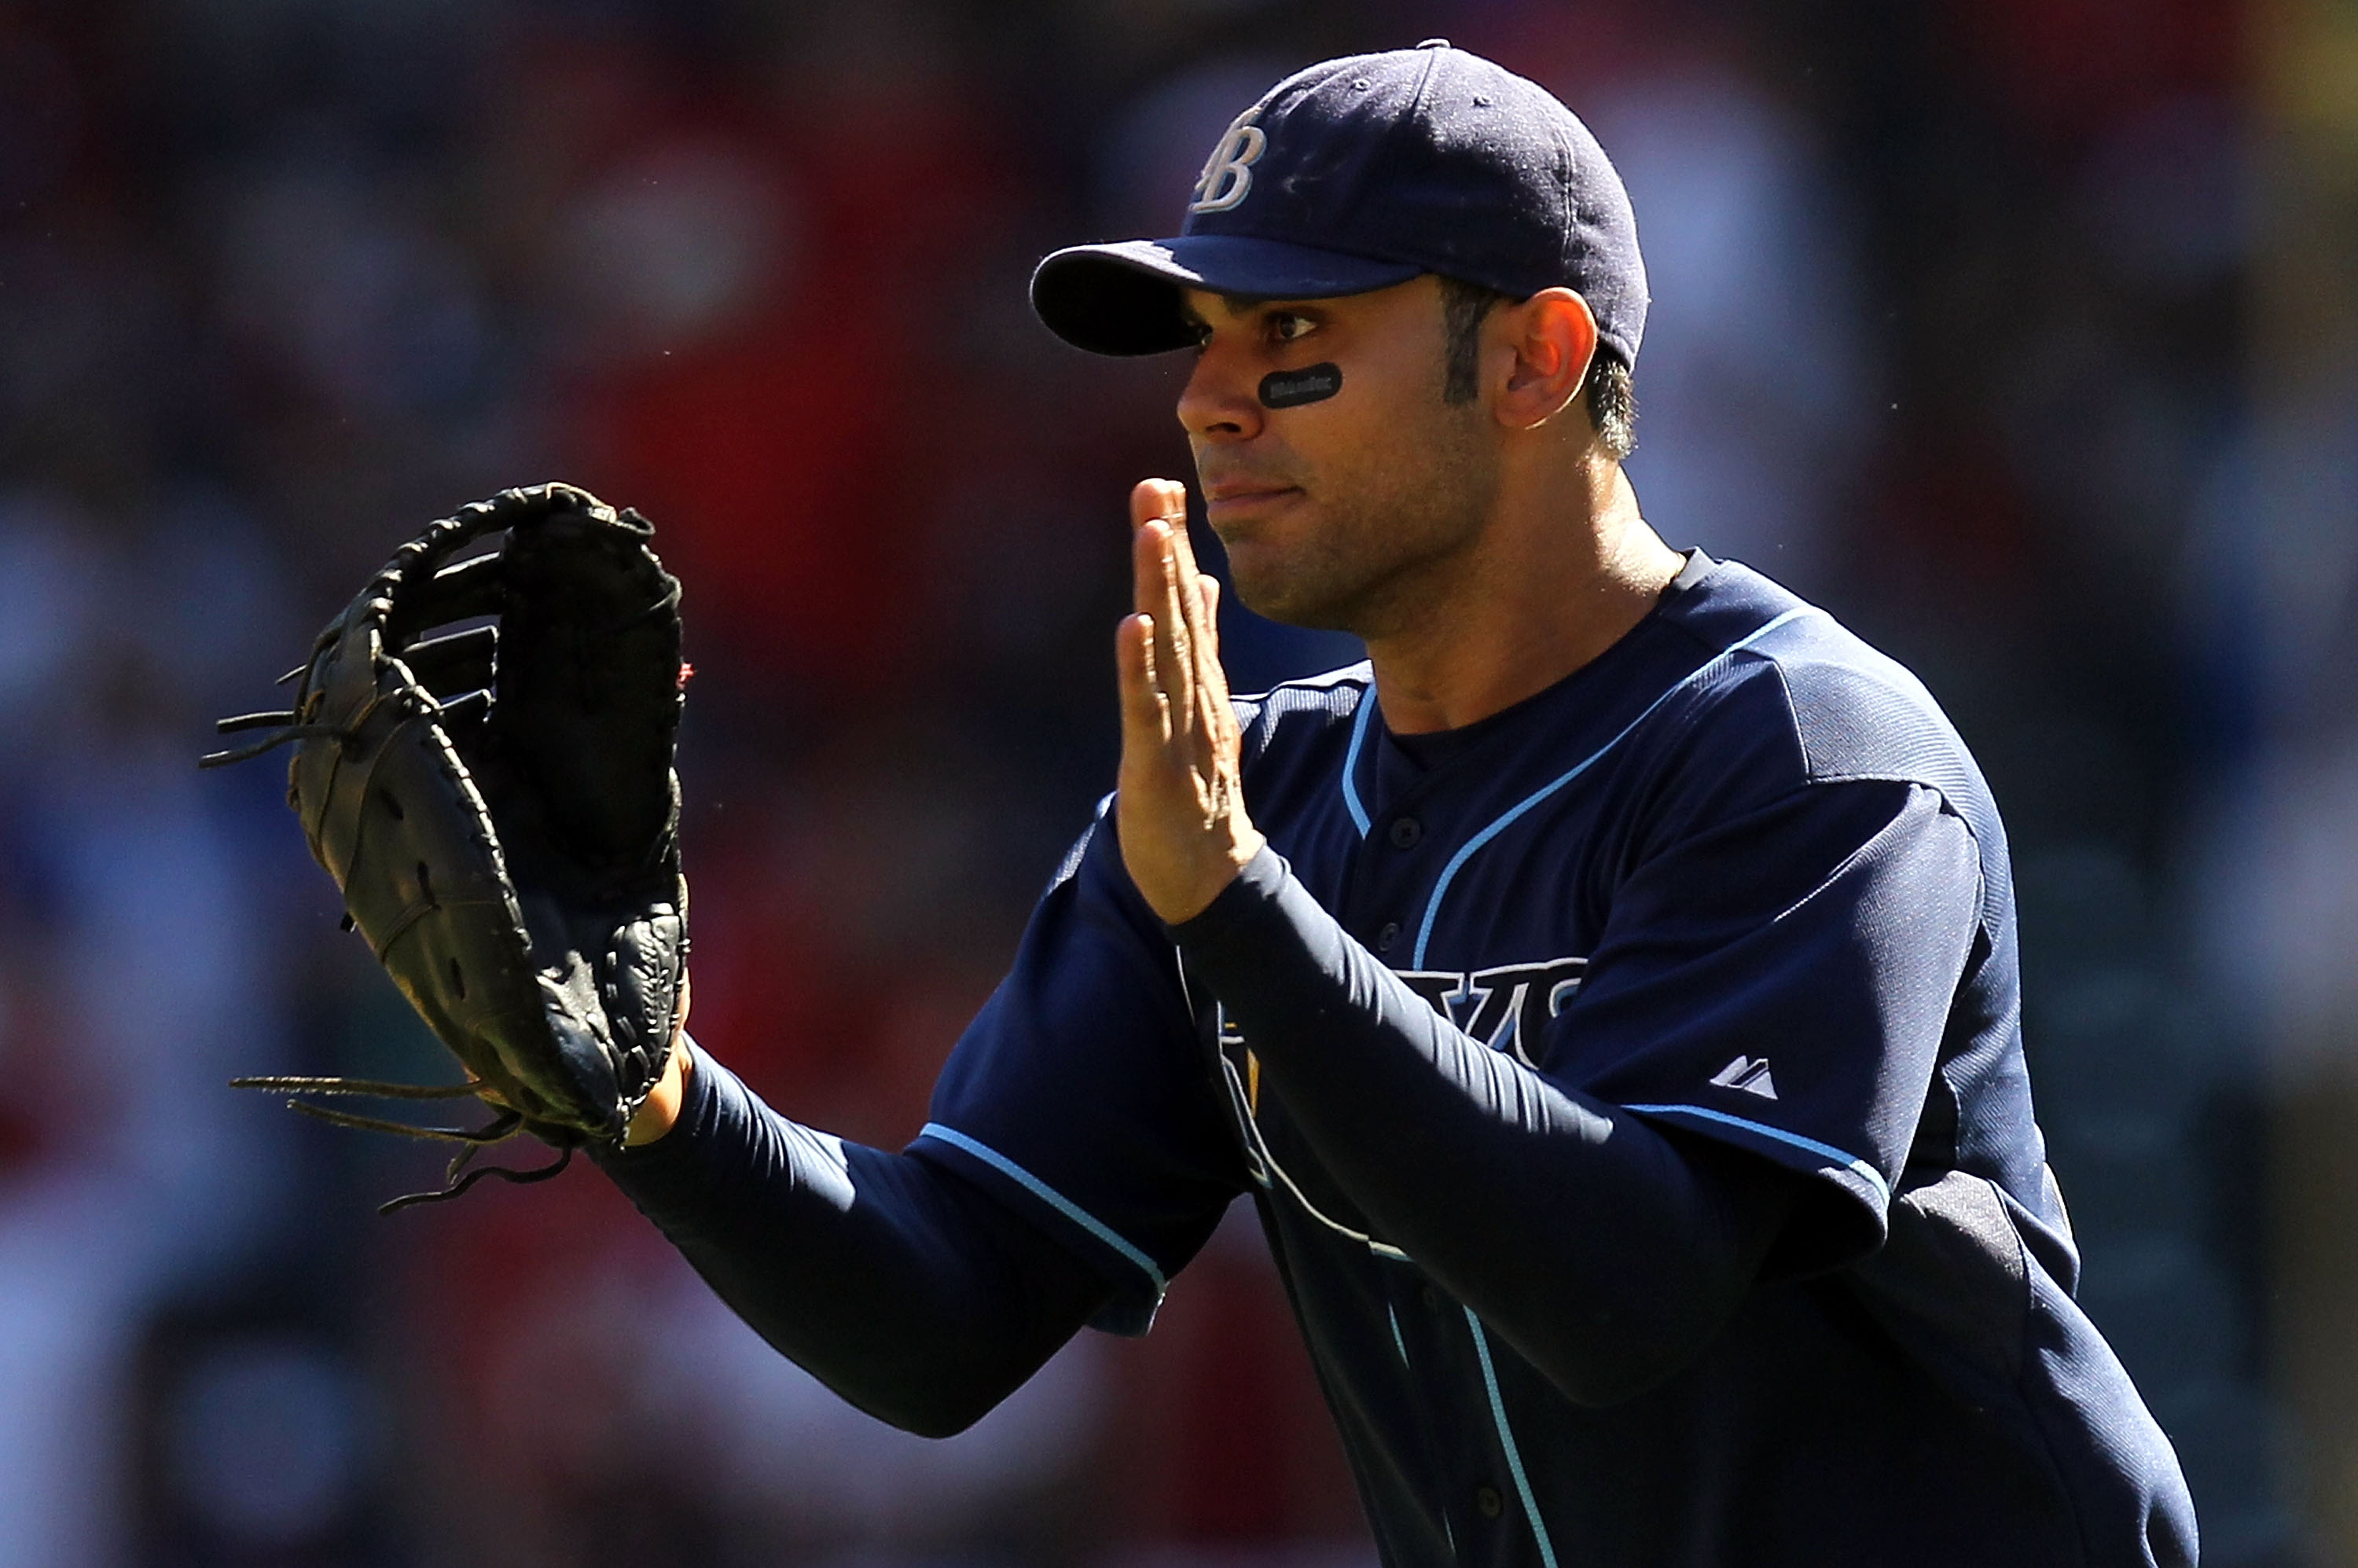 ARLINGTON, TX - OCTOBER 10:  Carlos Pena #23 of the Tampa Bay Rays celebrates after a 5-2 win against the Texas Rangers during game 4 of the ALDS at Rangers Ballpark in Arlington on October 10, 2010 in Arlington, Texas.  (Photo by Ronald Martinez/Getty Im